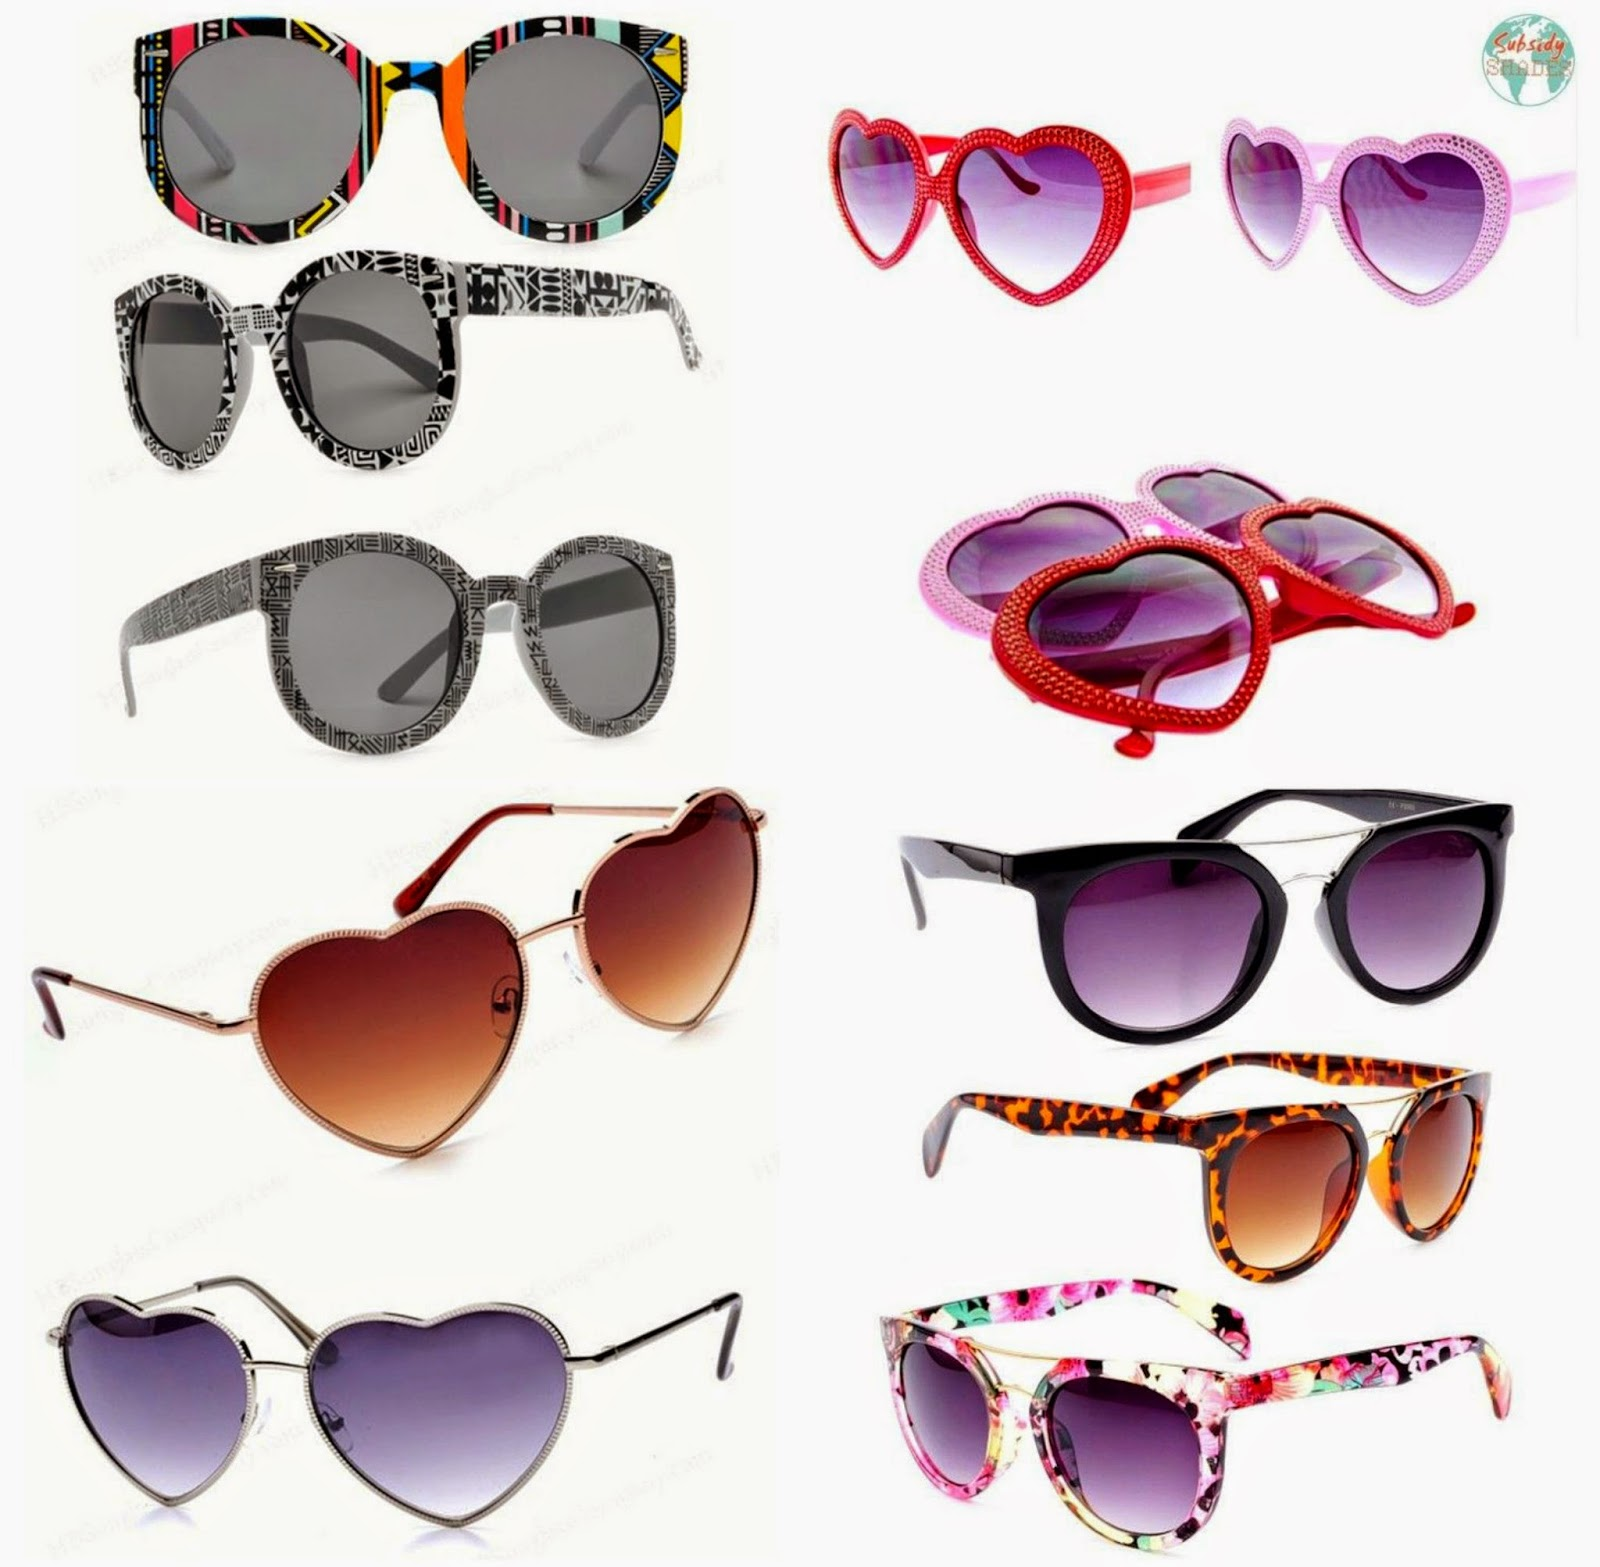 http://www.subshades.com/shop.html